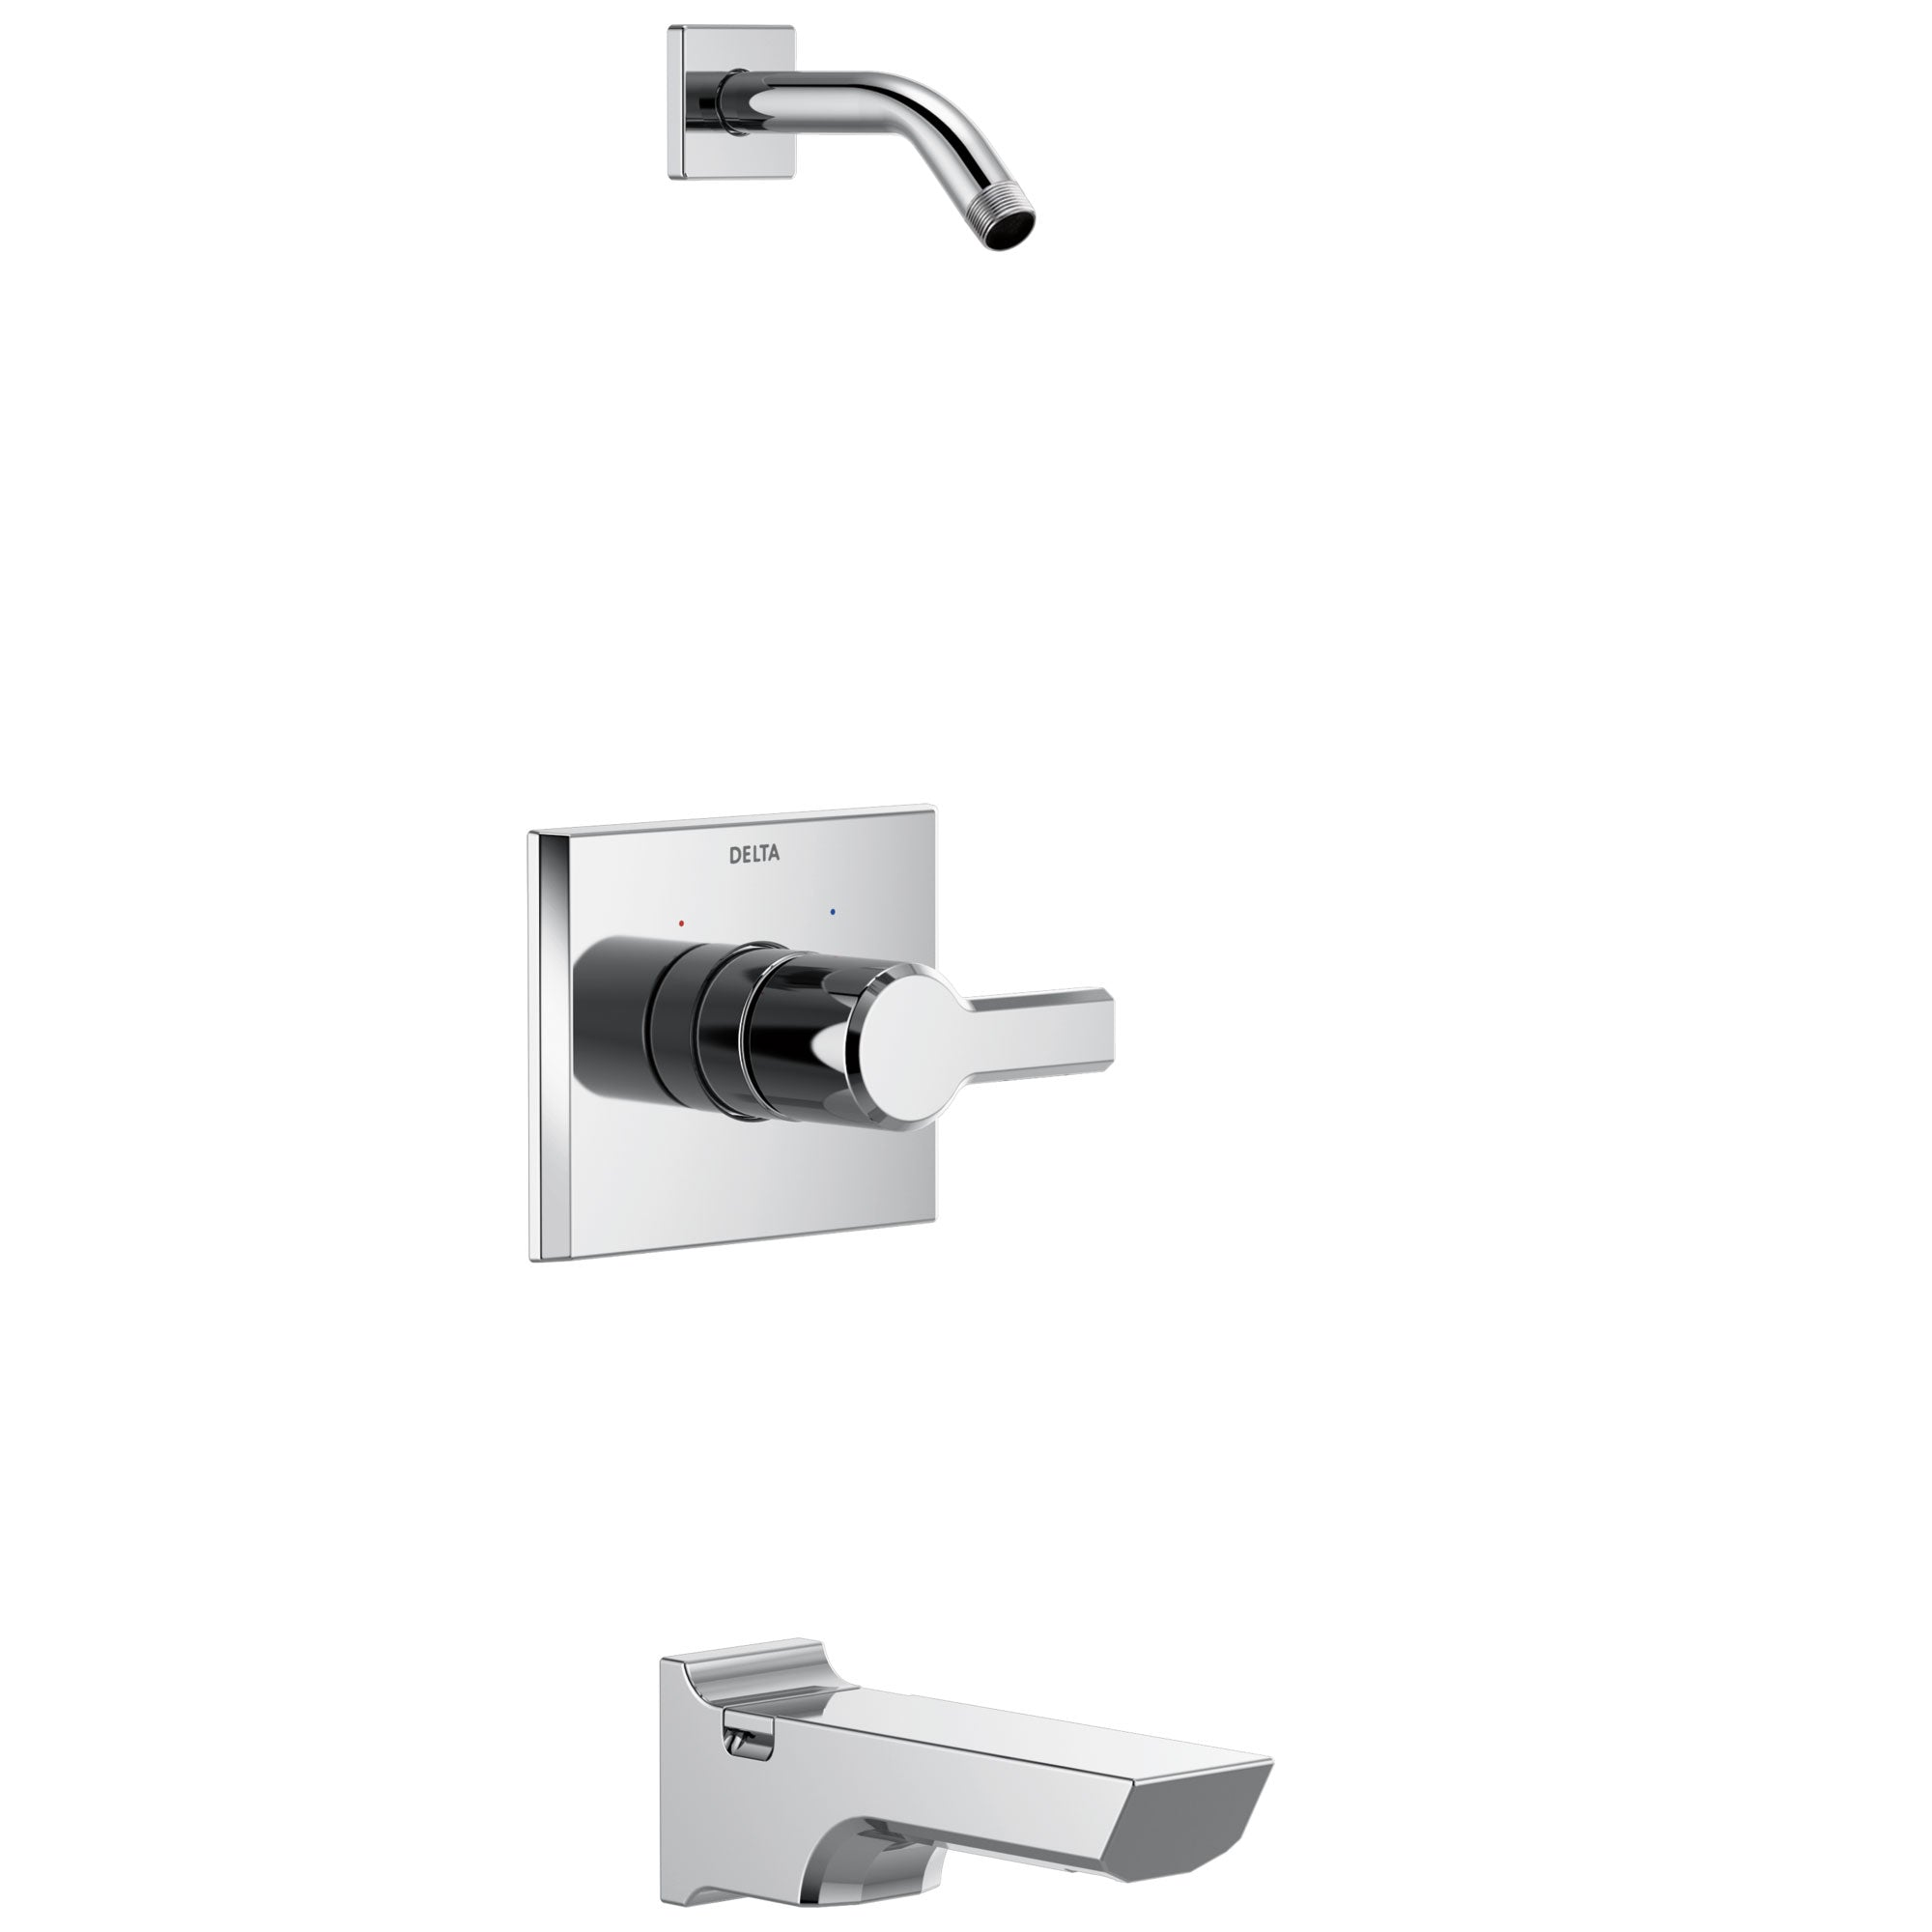 Delta Pivotal Chrome Finish Monitor 14 Series Tub and Shower Faucet Trim Kit Less showerhead (Requires Valve) DT14499LHD